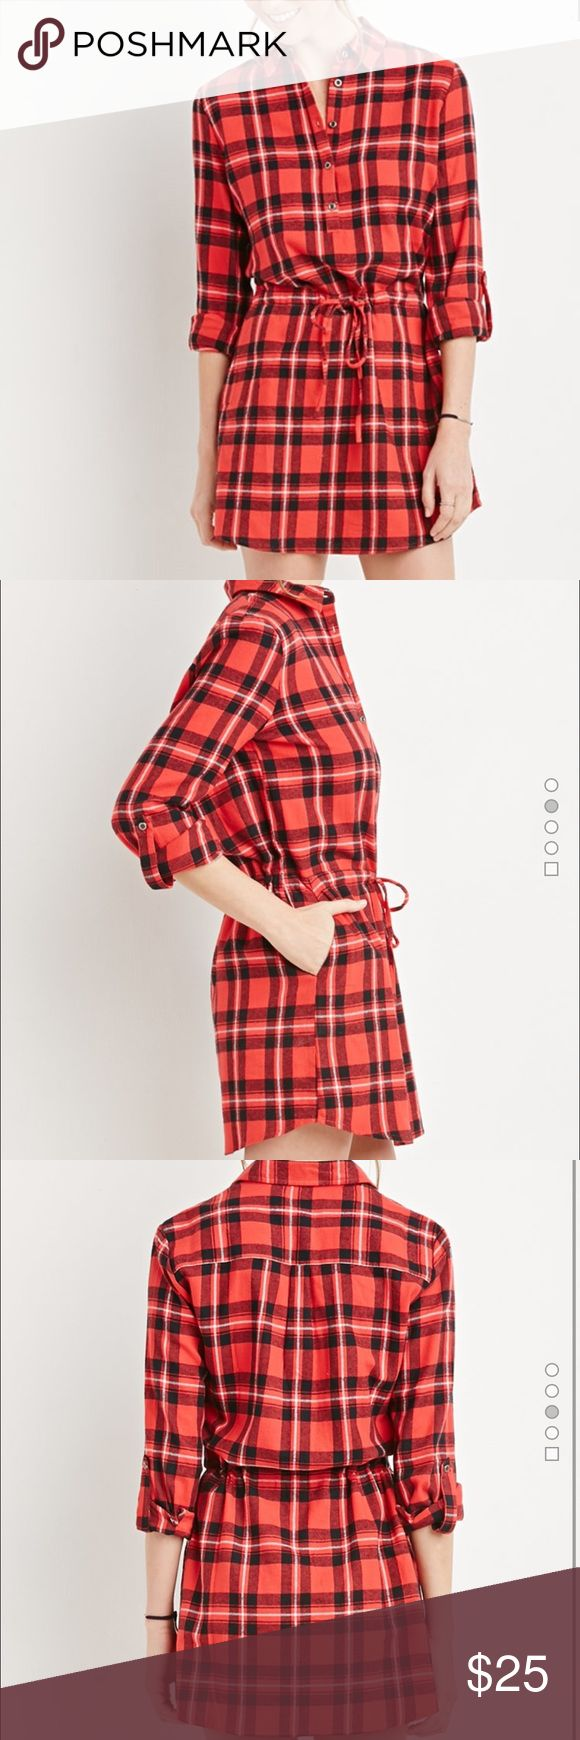 Plaid Flannel Shirt Dress 🍃🍂 PERFECT FOR FALL! Plaid Flannel Shirt Dress! This is a long sleeved mini shirt dress crafted from plaid flannel with a partially buttoned front, a basic collar, and a drawstring waist. Slanted front pockets and button-tab Sleeves. Color - Red, White & Black. Size - Small. Forever 21 Dresses